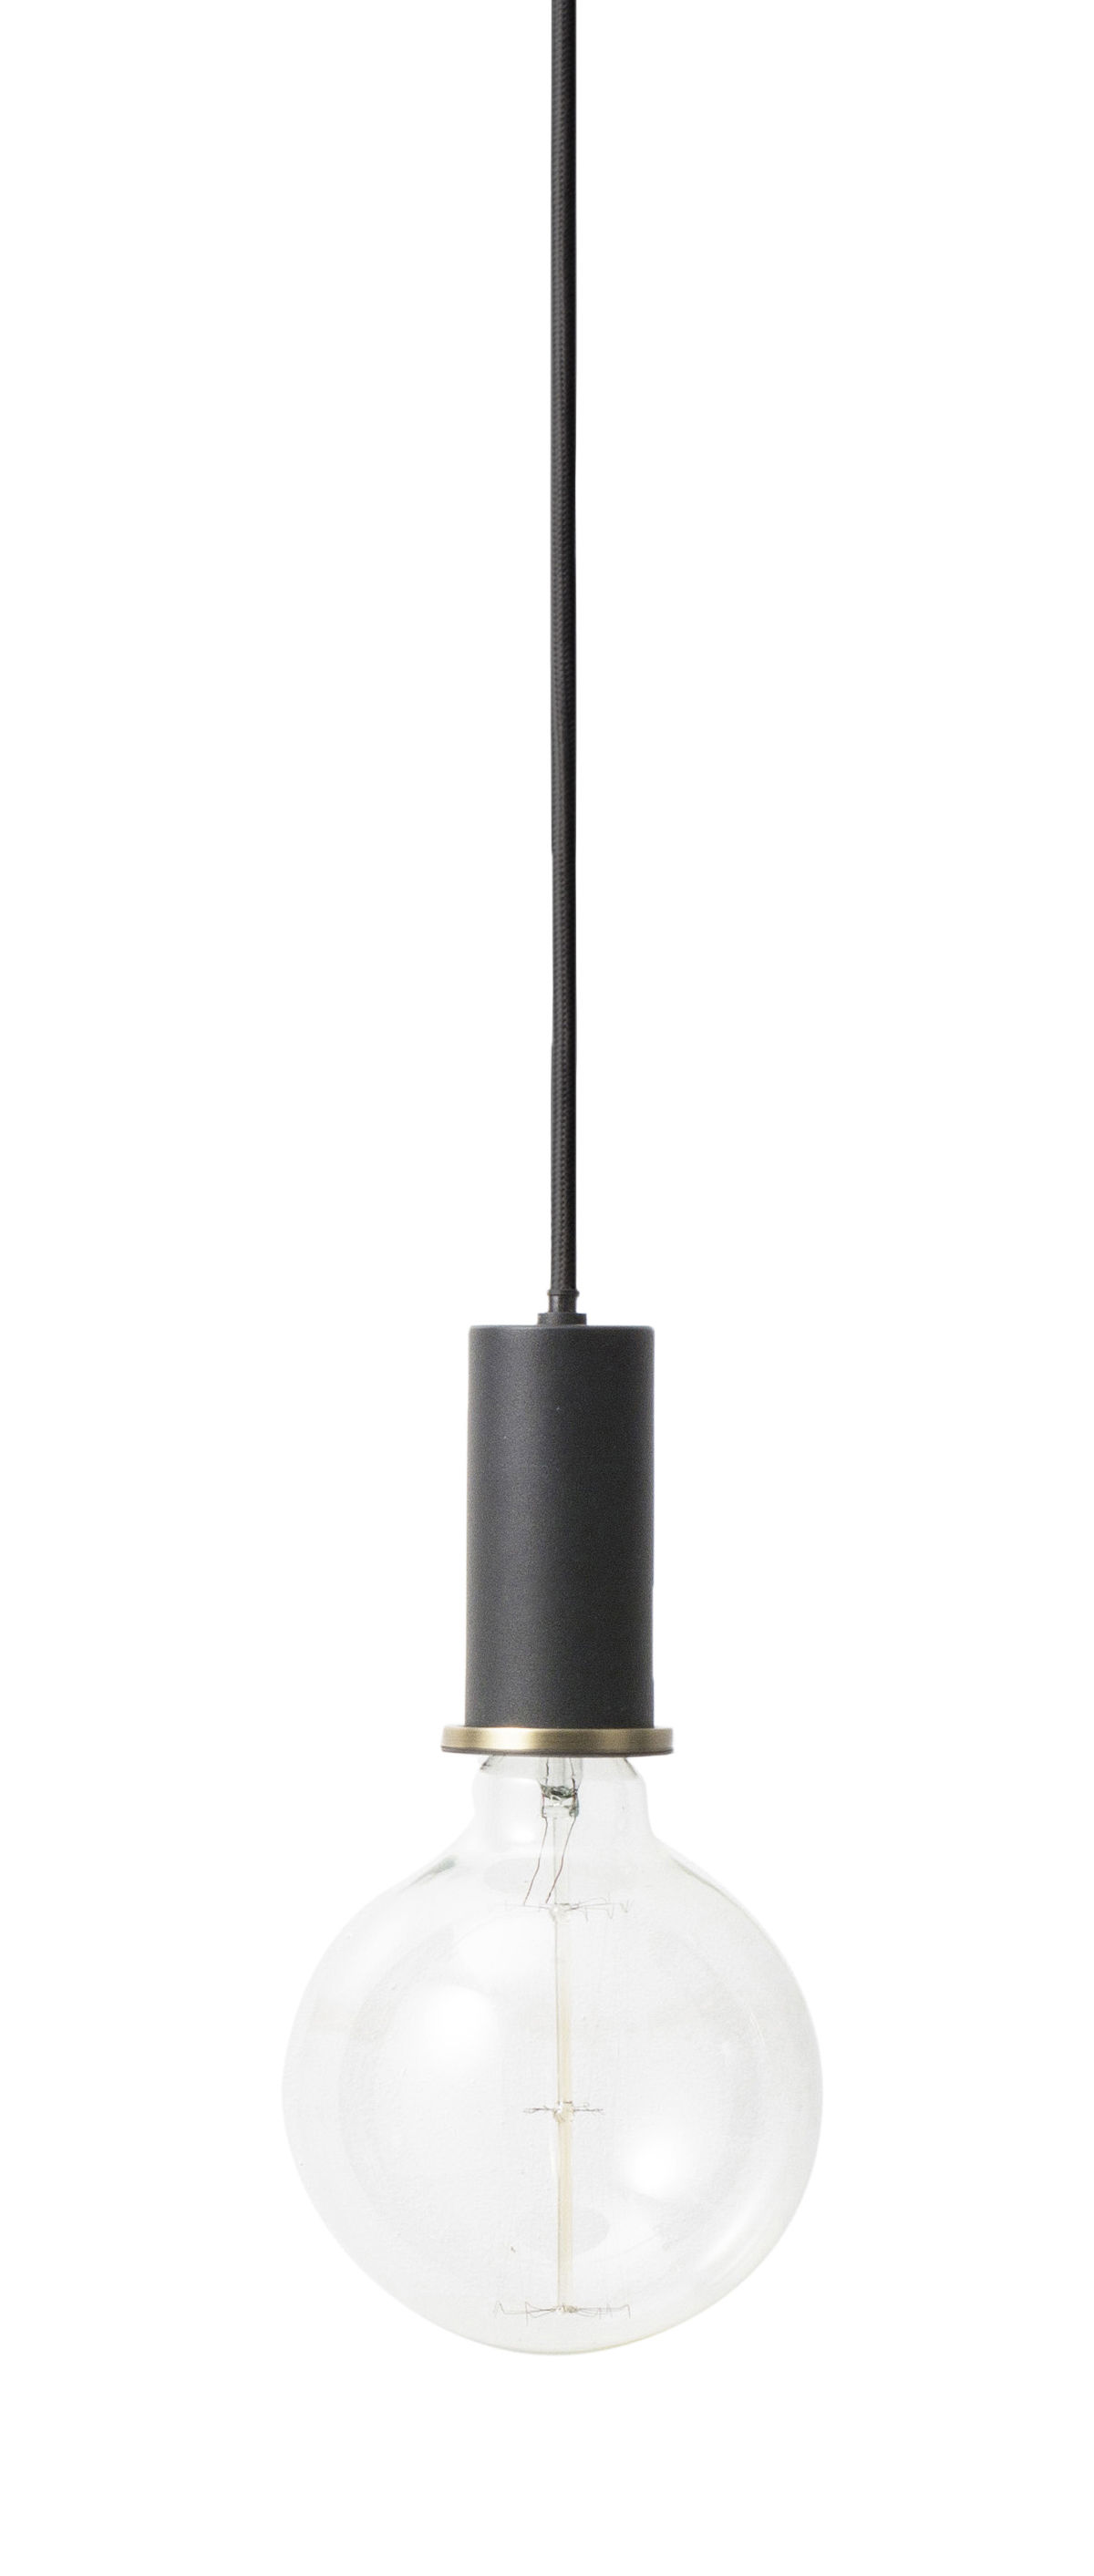 Lighting - Pendant Lighting - Socket Collect Small Pendant - Set wire + socket + canopy by Ferm Living - Set socket / Black - Fabric, Lacquered metal